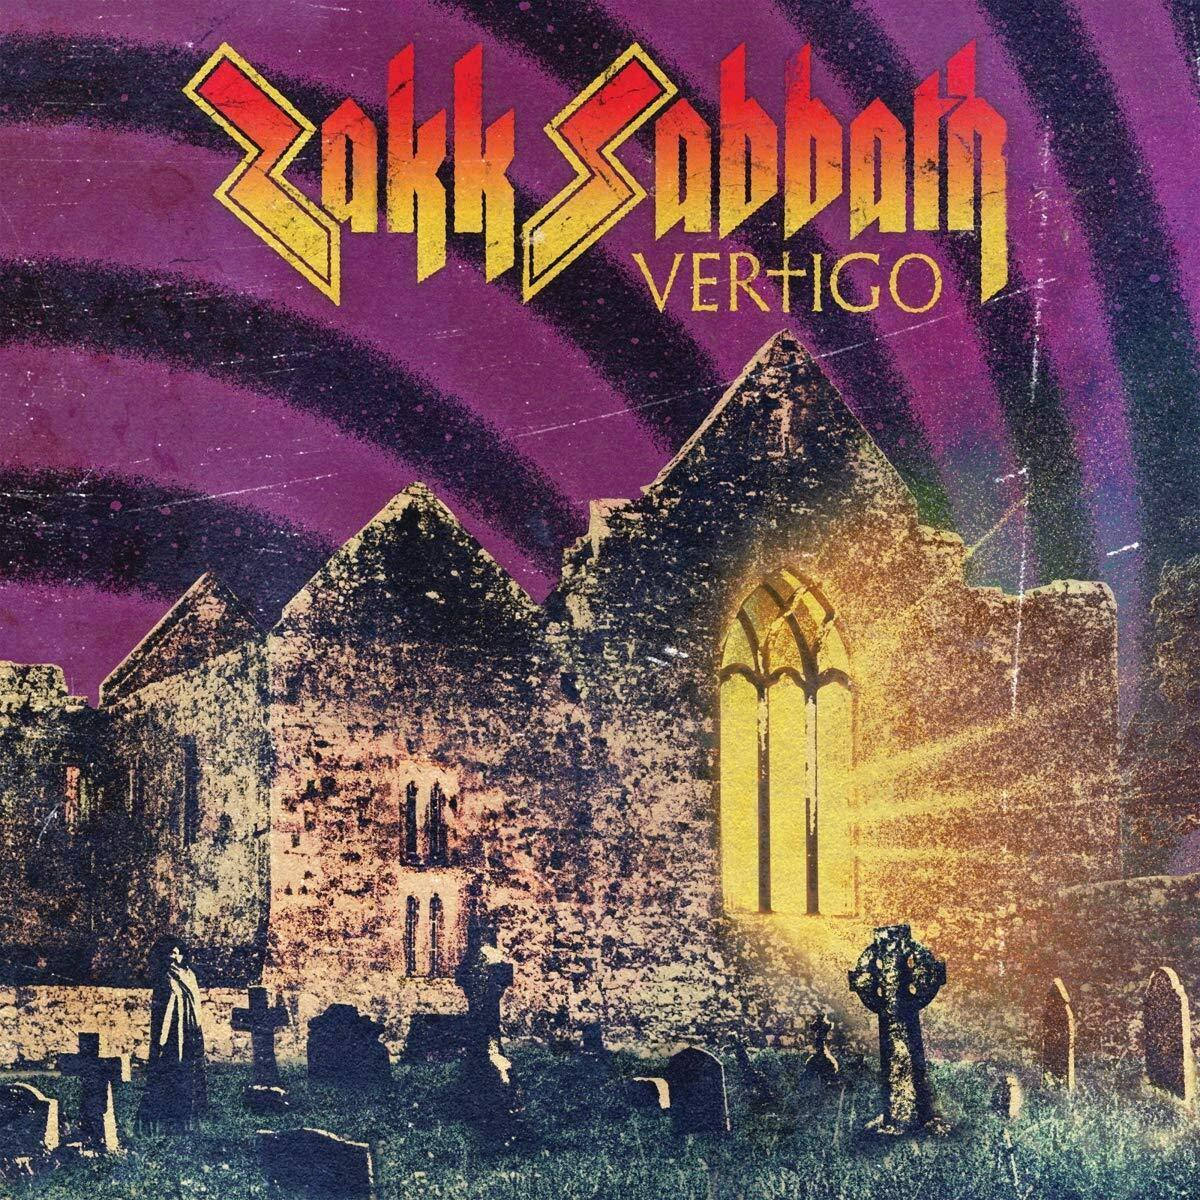 Zakk Sabbath - Vertigo [LP] (Purple Vinyl, Black Sabbath cover band supergroup with Zakk Wylde, gatefold) - Urban Vinyl | Records, Headphones, and more.